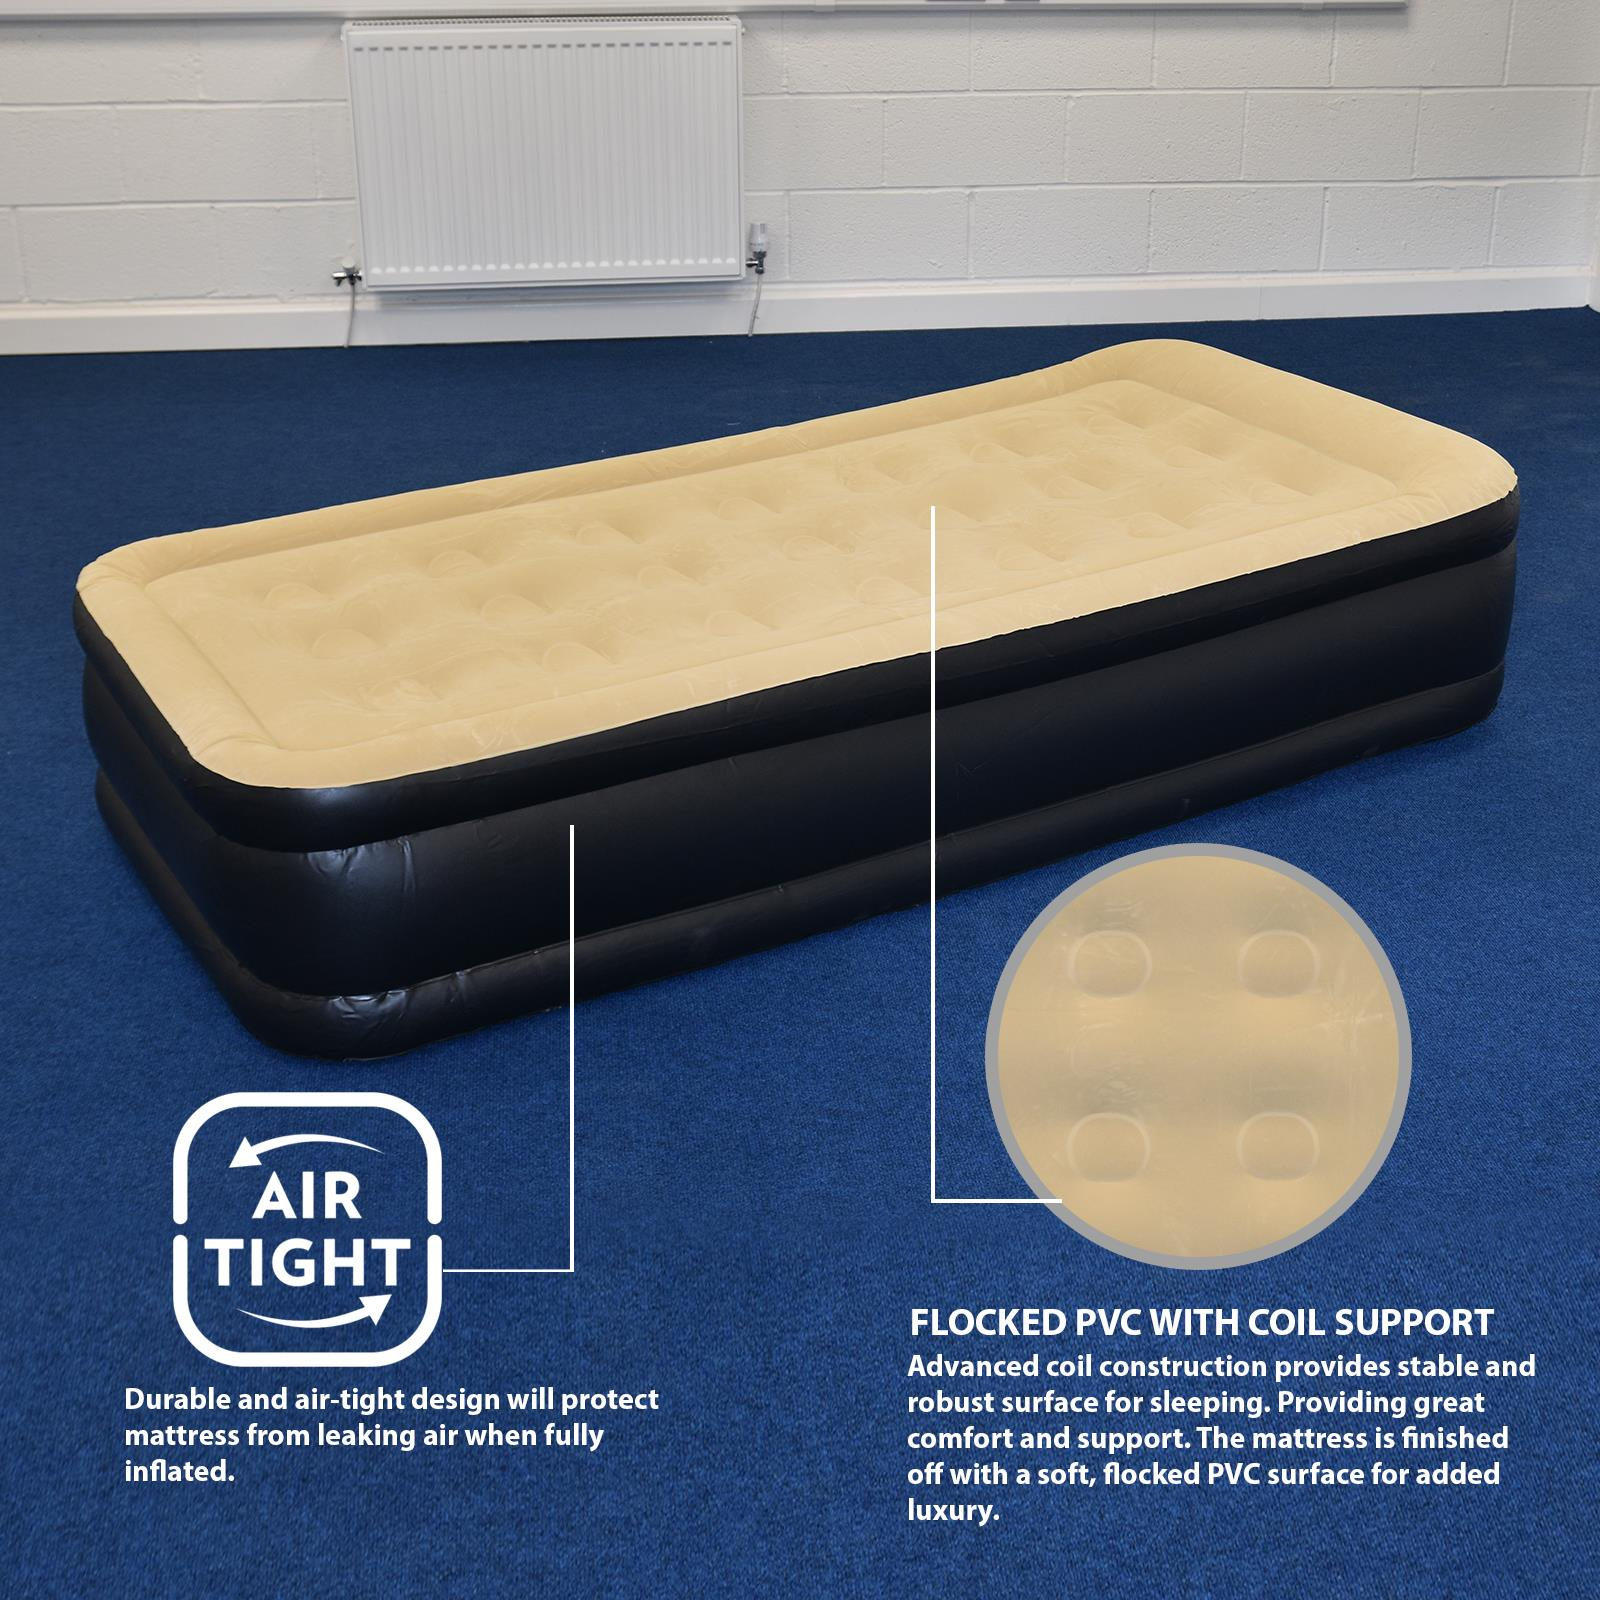 Jilong-Luxury-Air-Bed-Mattress-Soft-Flocked-Inflatable-Relaxing-Airbed-Camping thumbnail 8